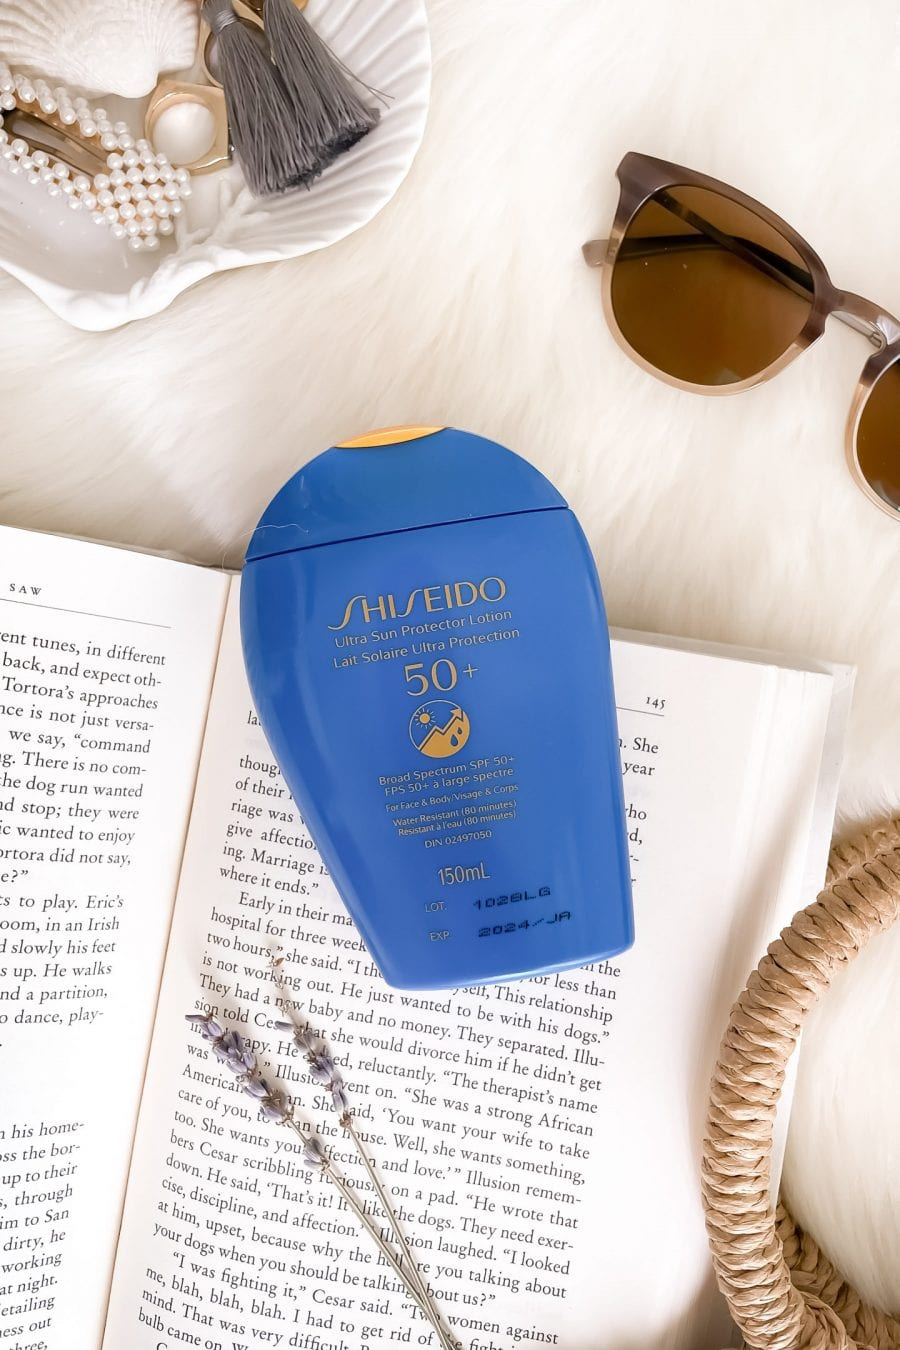 You don't need to have dark skin to love this sunscreen. The Shiseido Ultra Sun Protection Lotion SPF 50 is for both face and body. It's the sheerest sunscreen I've ever tried and leaves not white cast. It feels like nothing on works well under makeup. More on yesmissy.com